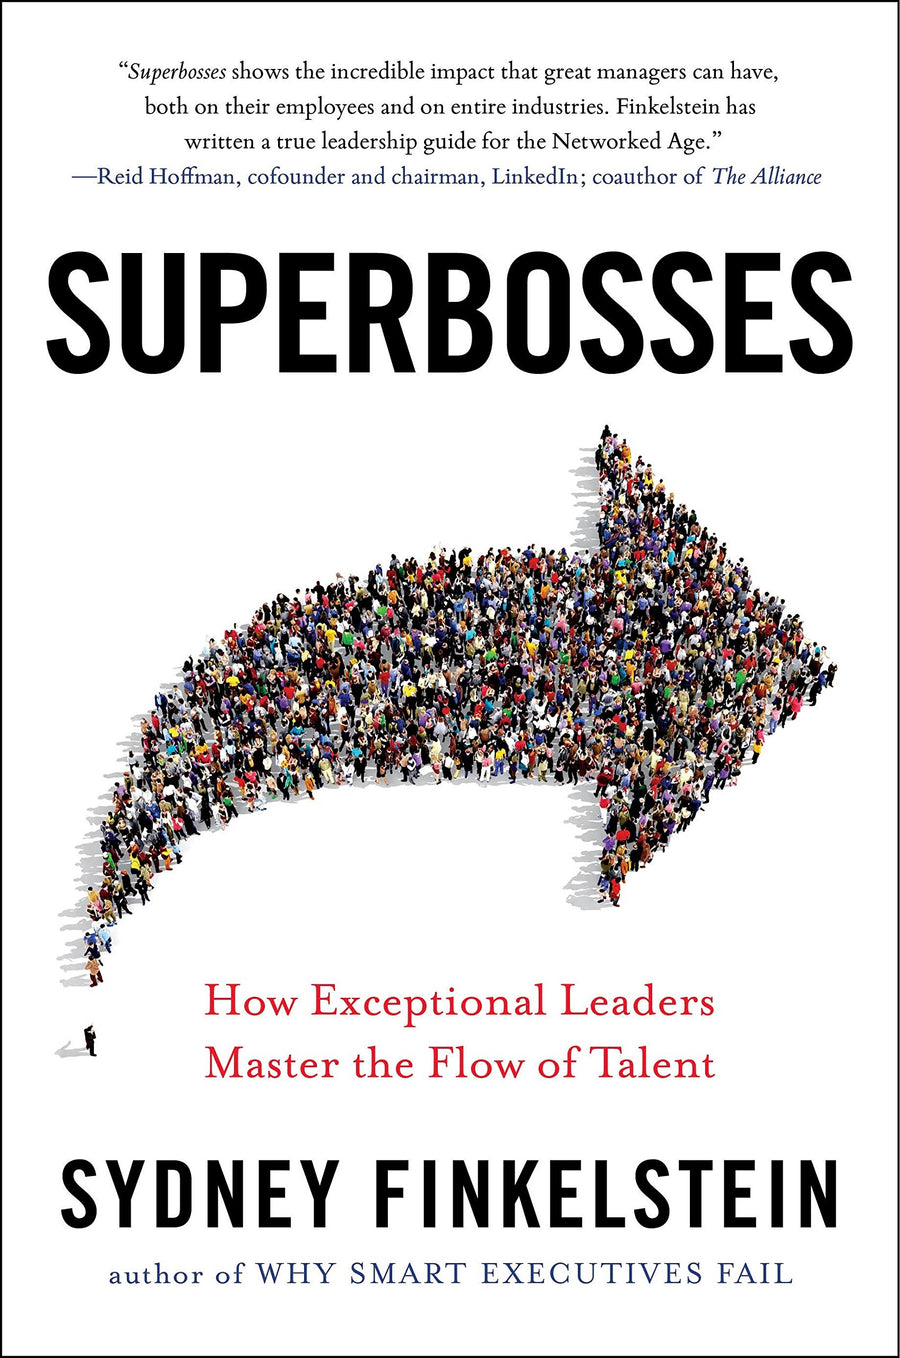 Superbosses: How Exceptional Leaders Master the Flow of Talent by Sydney Finkelstein